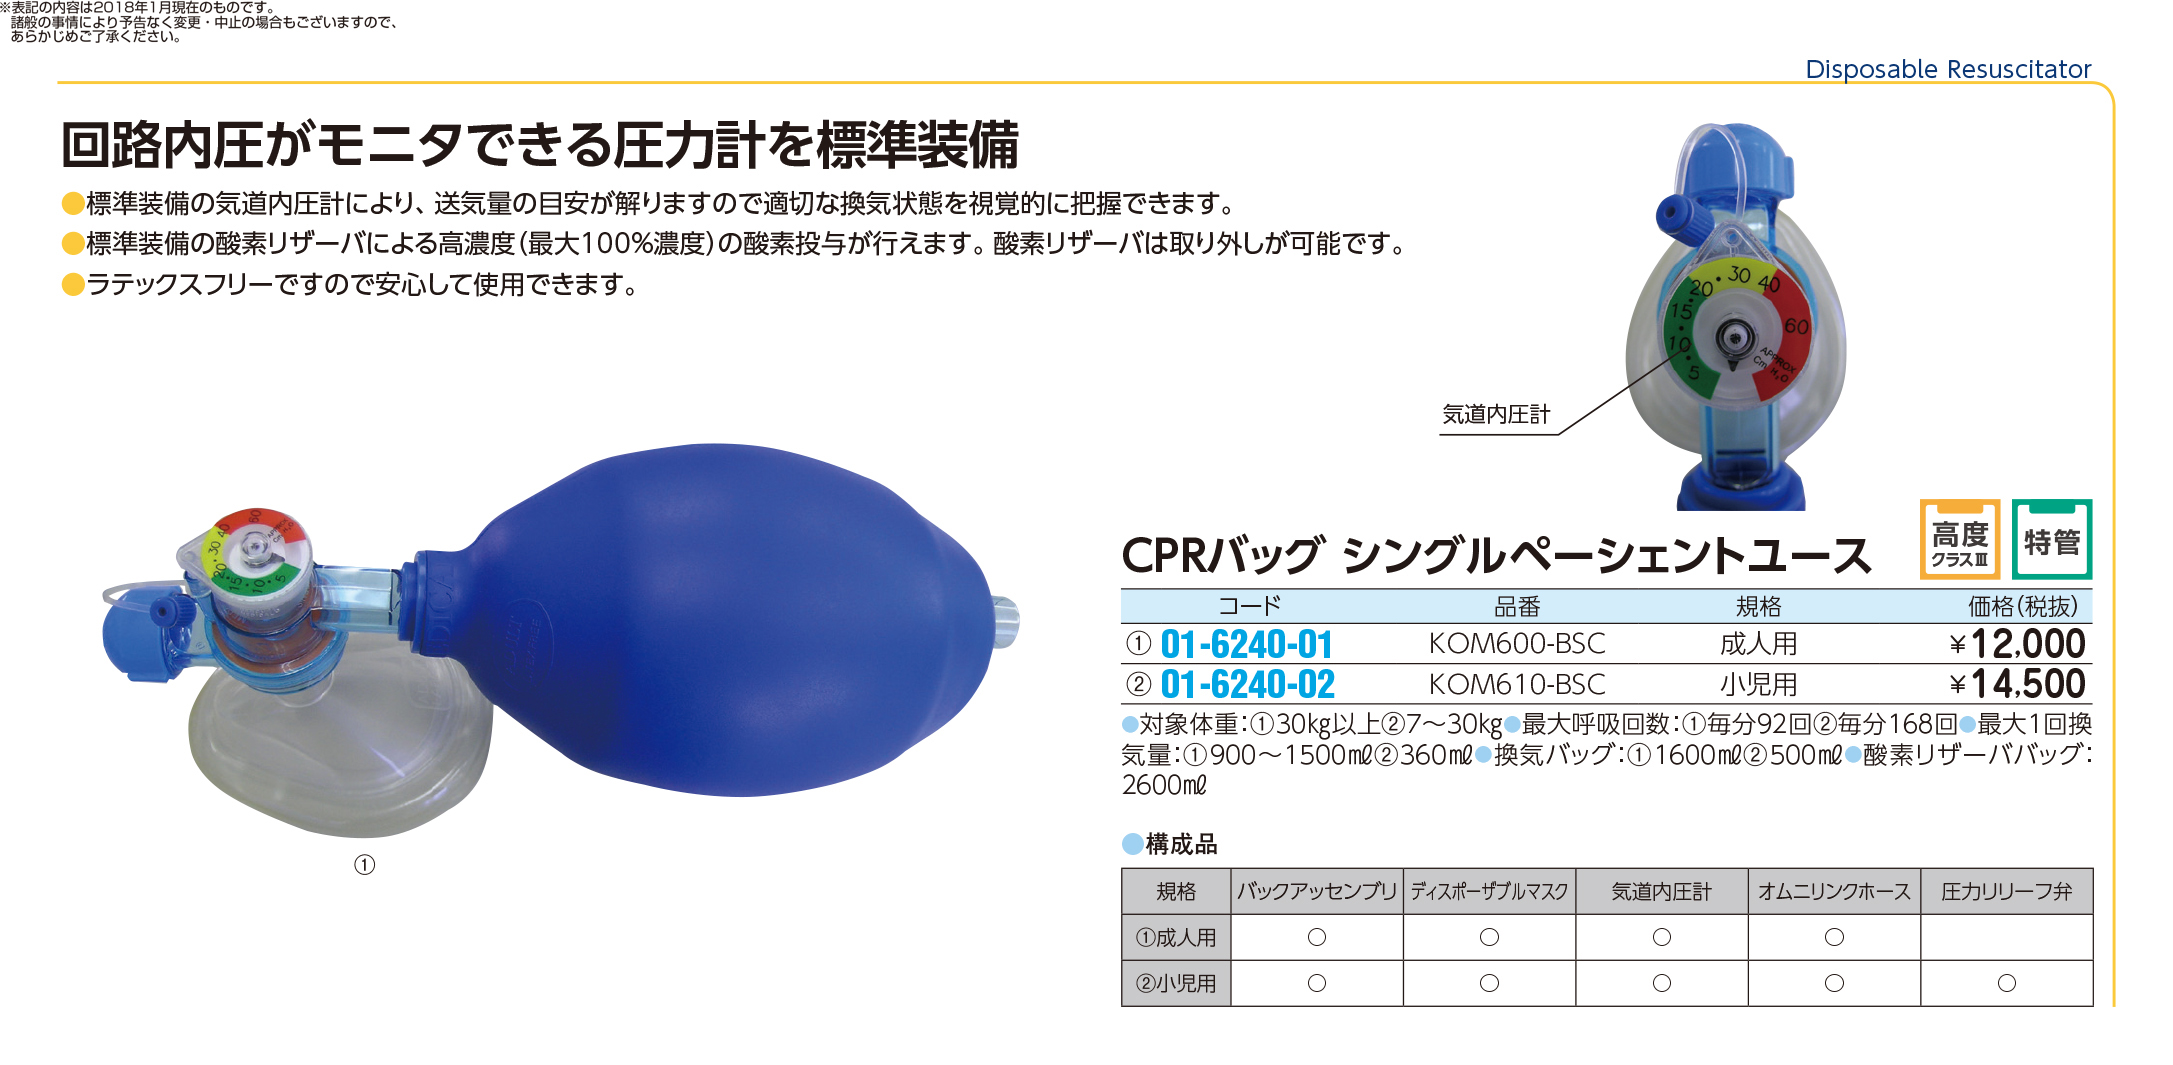 (01-6240-01)CPRバッグ(成人用セット) KOM600-BSC CPRバッグ(セイジンヨウセット【1式単位】【2018年カタログ商品】